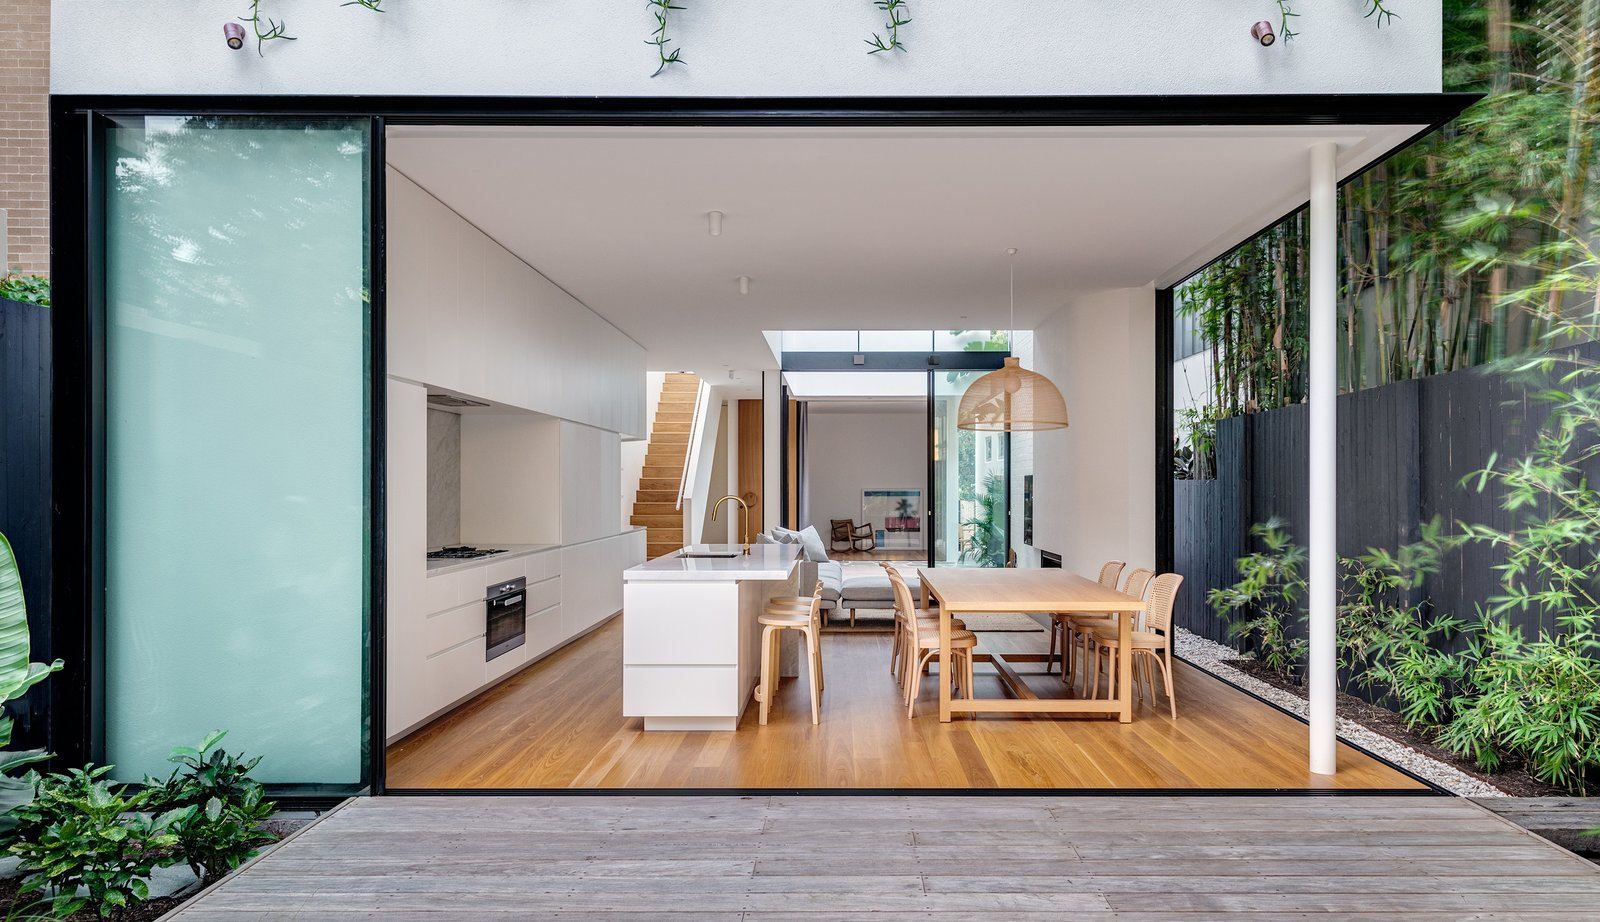 Dining, Ceiling, Pendant, Medium Hardwood, Table, and Chair The rear garden looks into the kitchen and dining space right through the internal courtyard and beyond.  Best Dining Photos from Cloud House